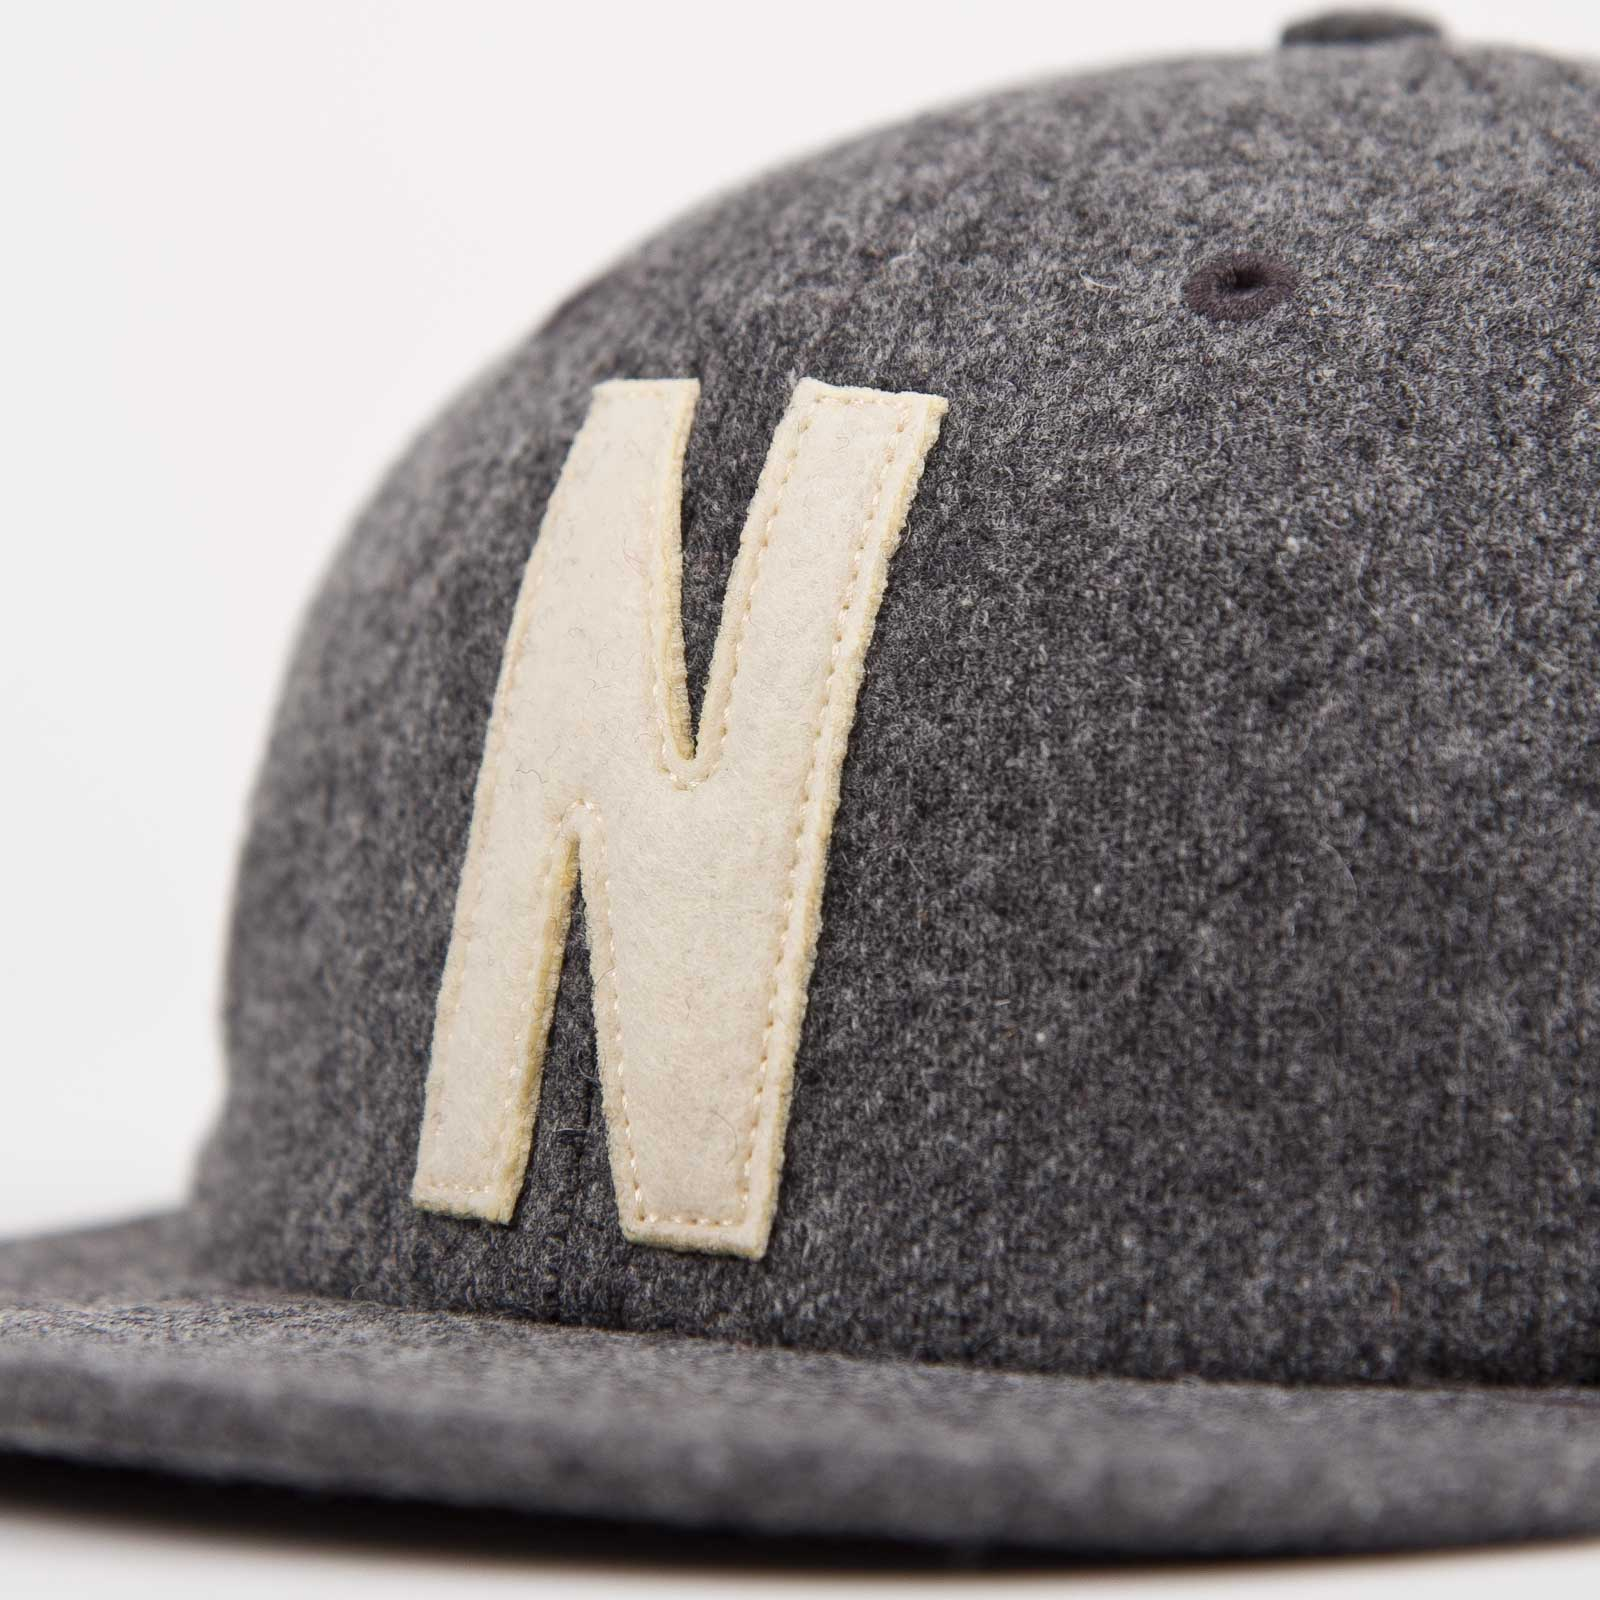 afb72513facd3 Norse Projects Wool N Flat Cap - N60-0155-1000 - Sneakersnstuff ...